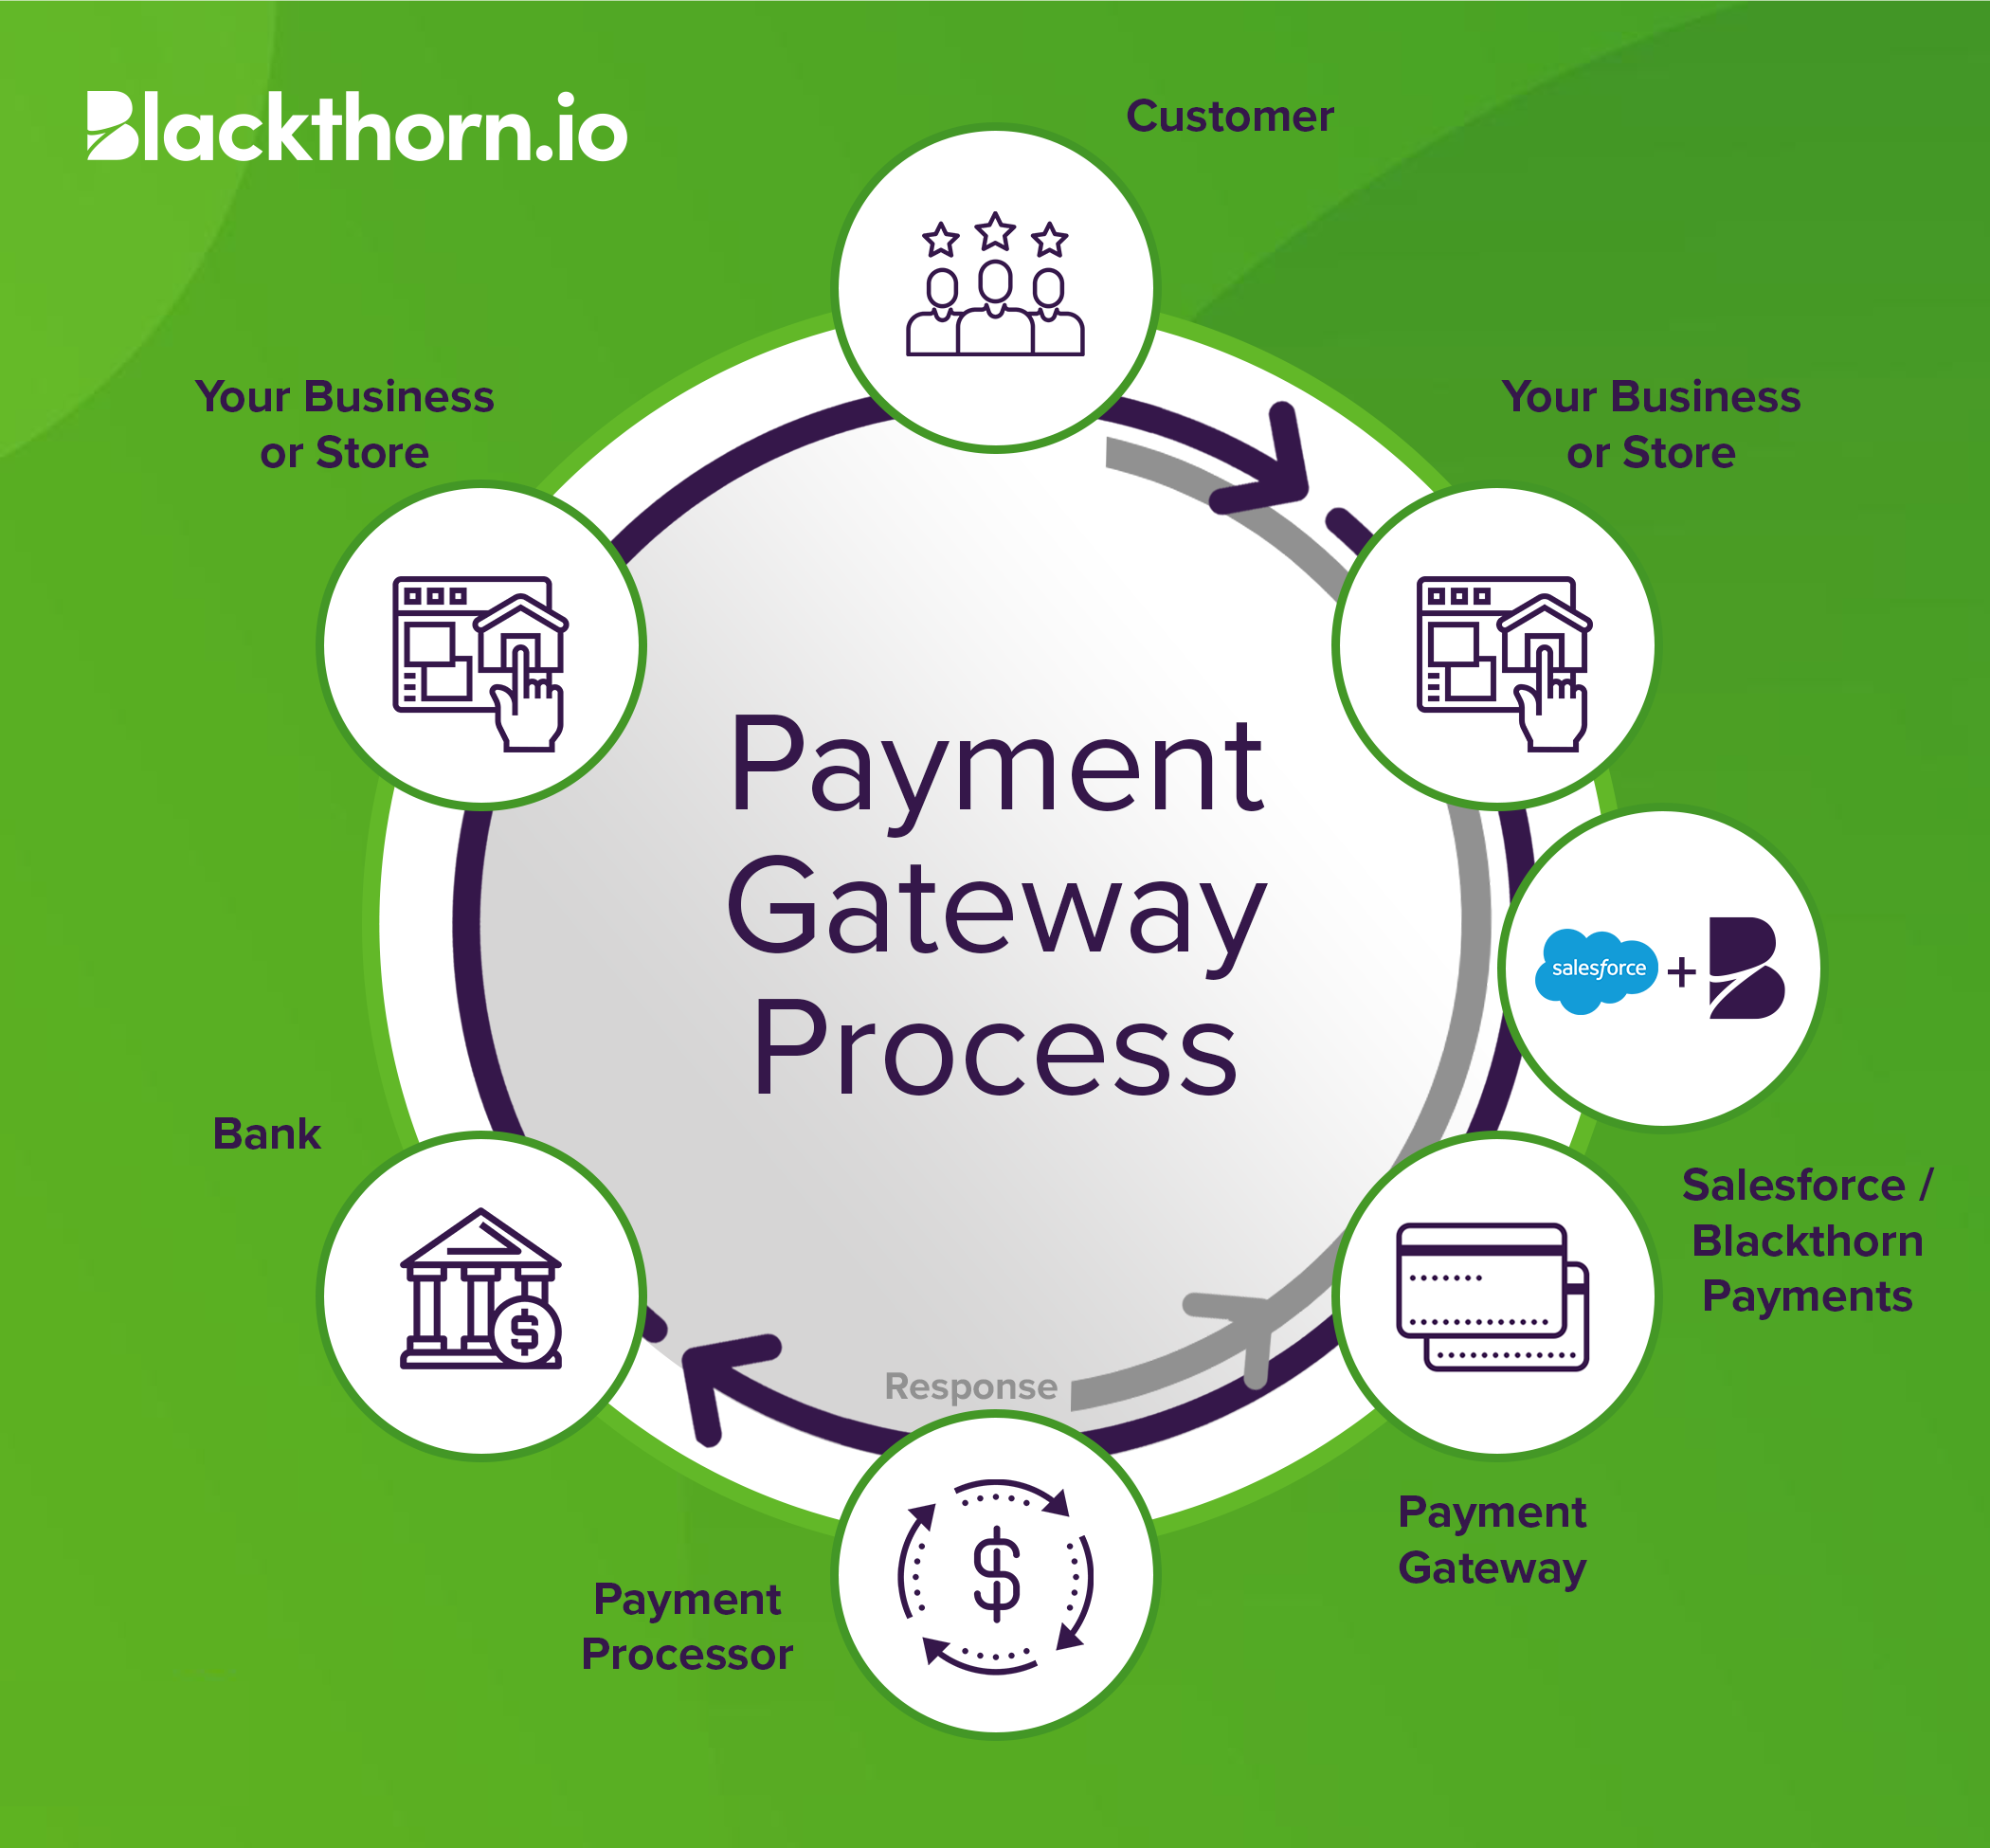 Blackthorn Payments Connects Your Payment Gateway to Salesforce